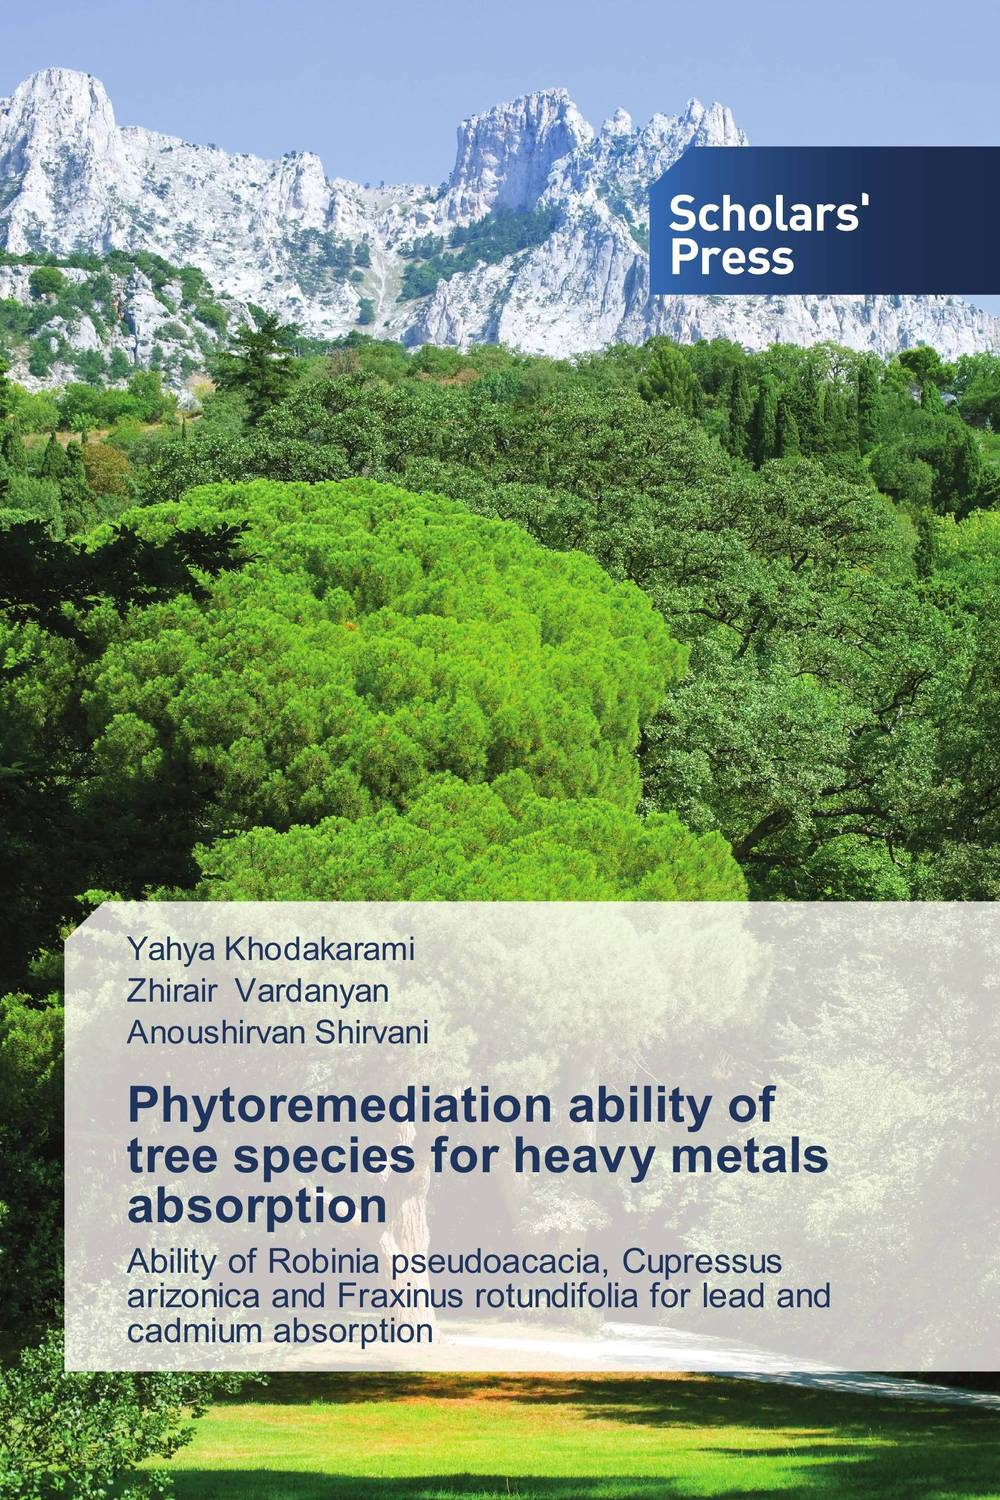 Phytoremediation ability of tree species for heavy metals absorption sumit chakravarty gopal shukla and amarendra nath dey tree borne oilseeds species